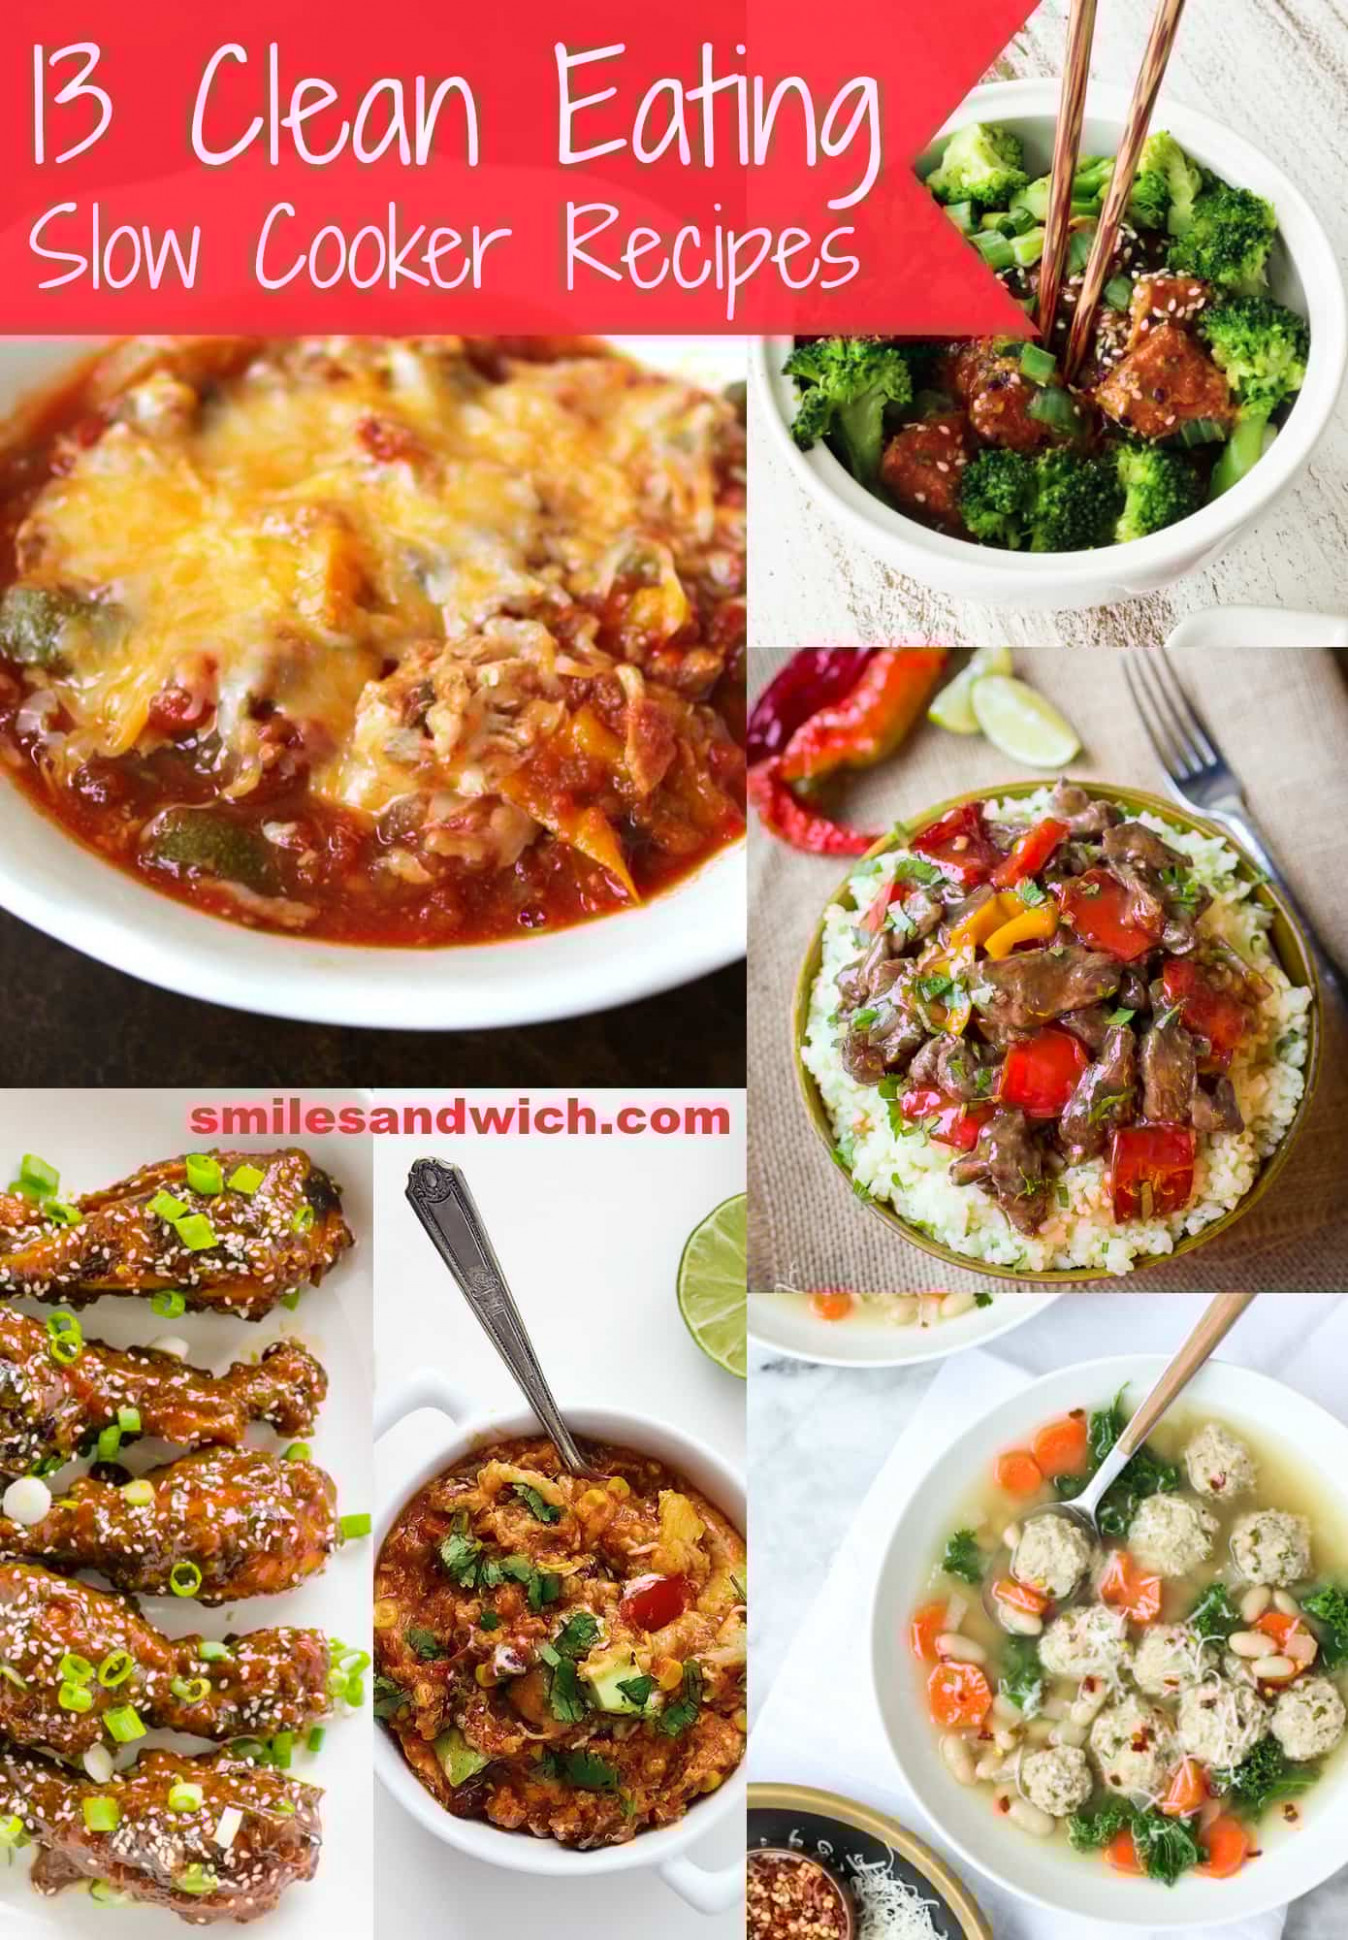 13 Clean Eating Slow Cooker Recipes - Smile Sandwich - clean food recipes